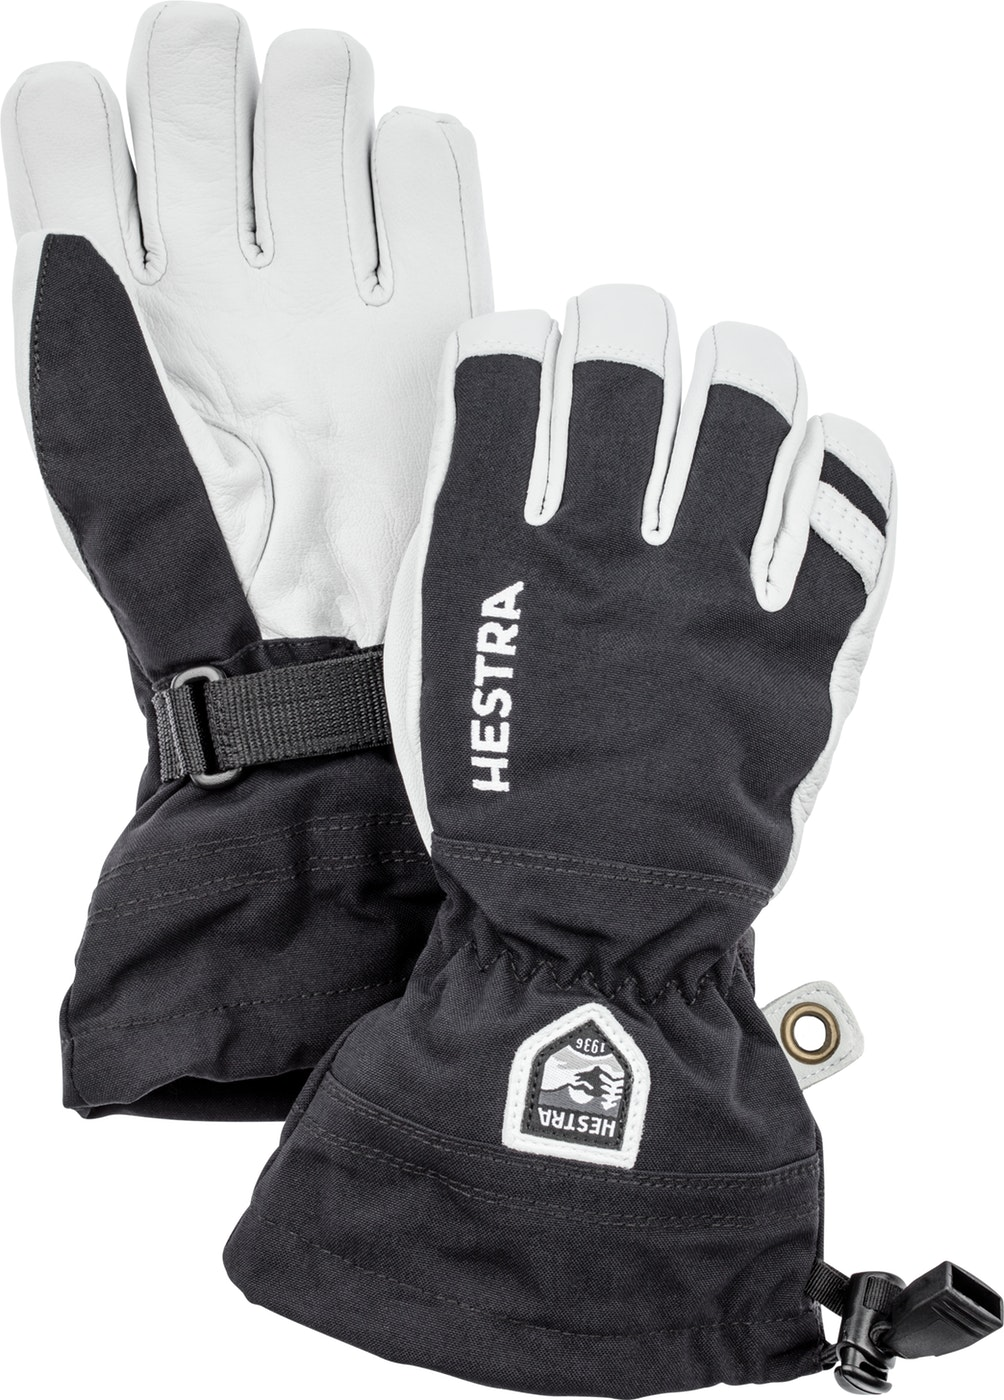 Hestra Army Leather Heli ski Jr - 5 finger